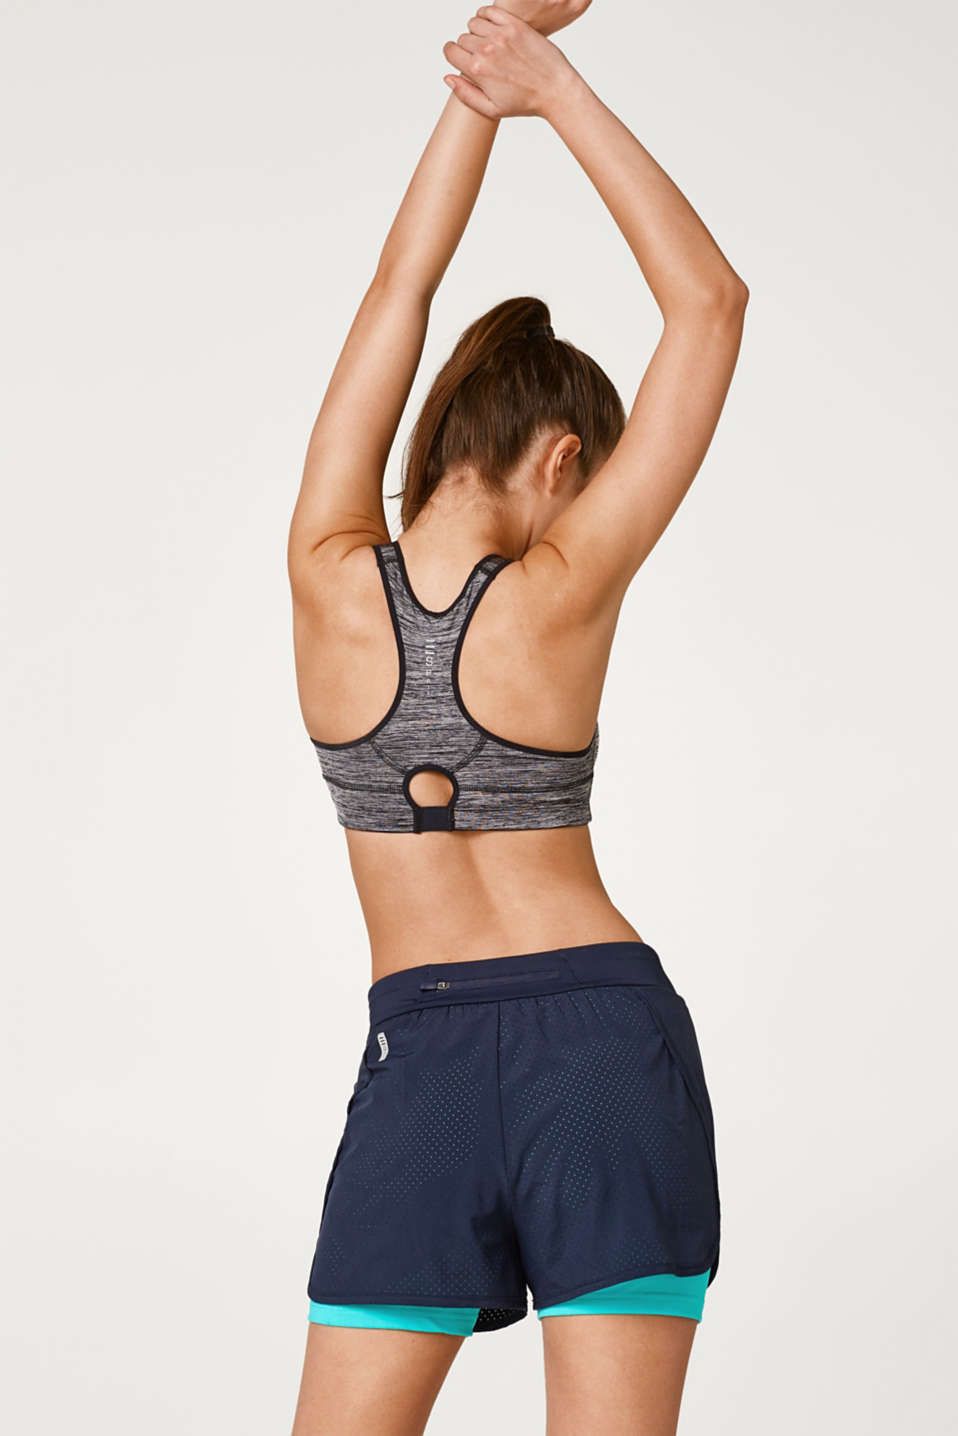 High-impact sports bra in cup sizes